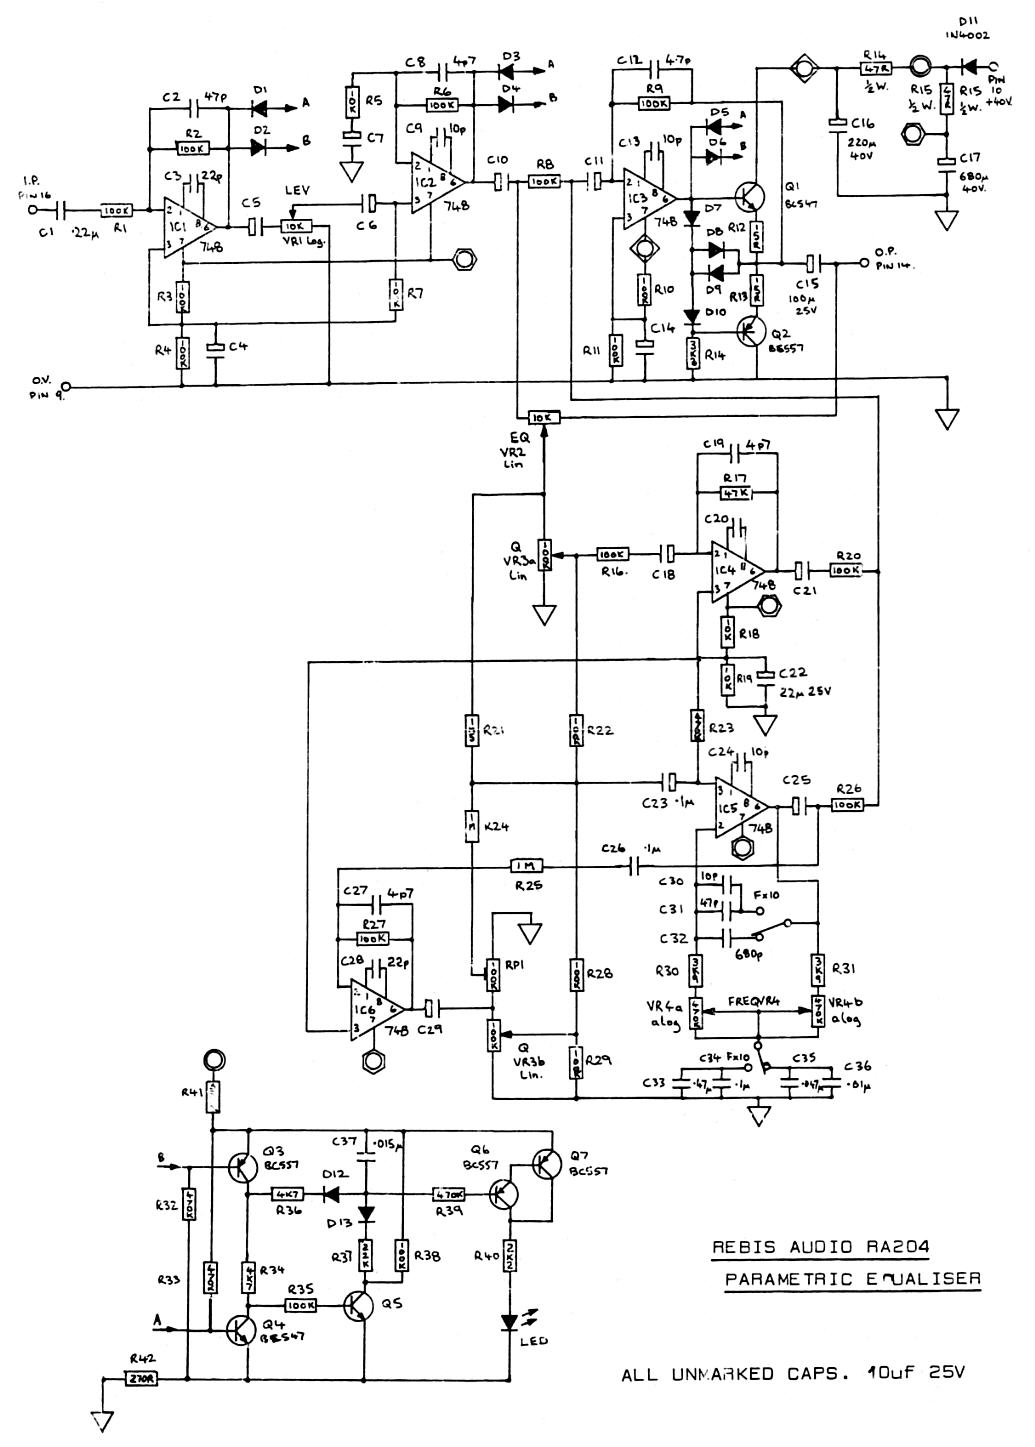 new holland l555 wiring diagram   31 wiring diagram images